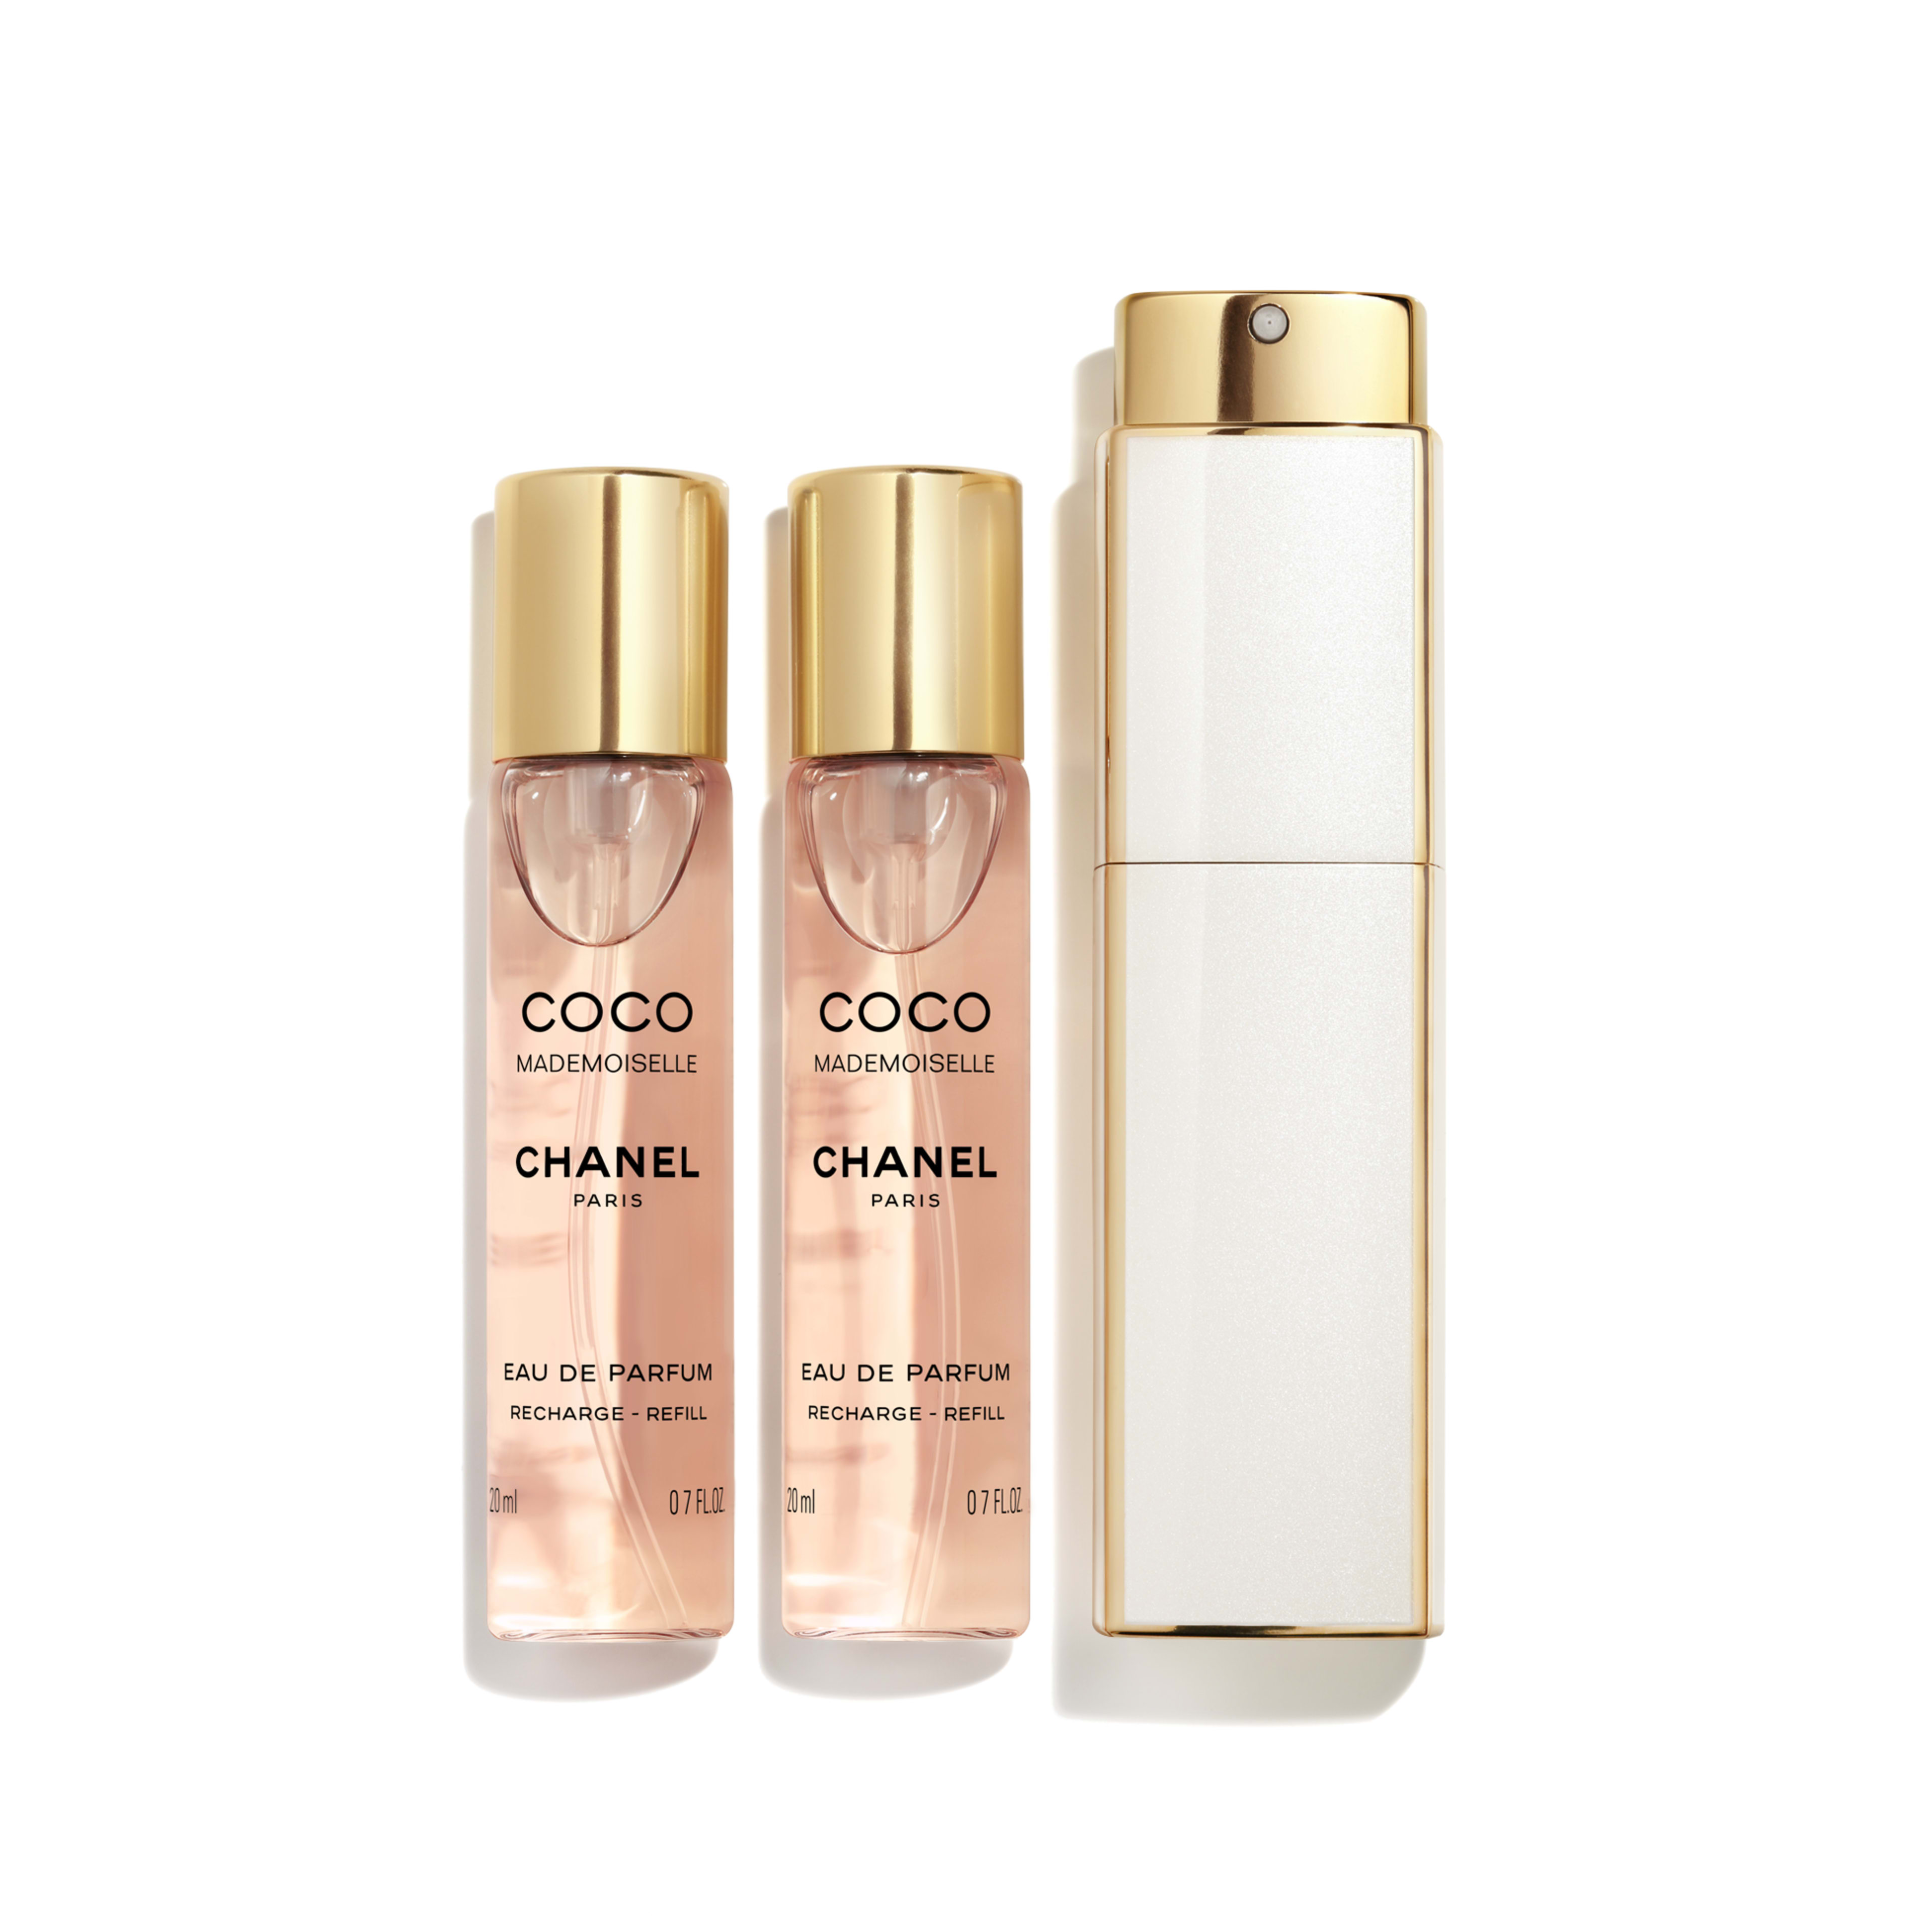 COCO MADEMOISELLE - fragrance - 3x0.7FL. OZ. - Default view